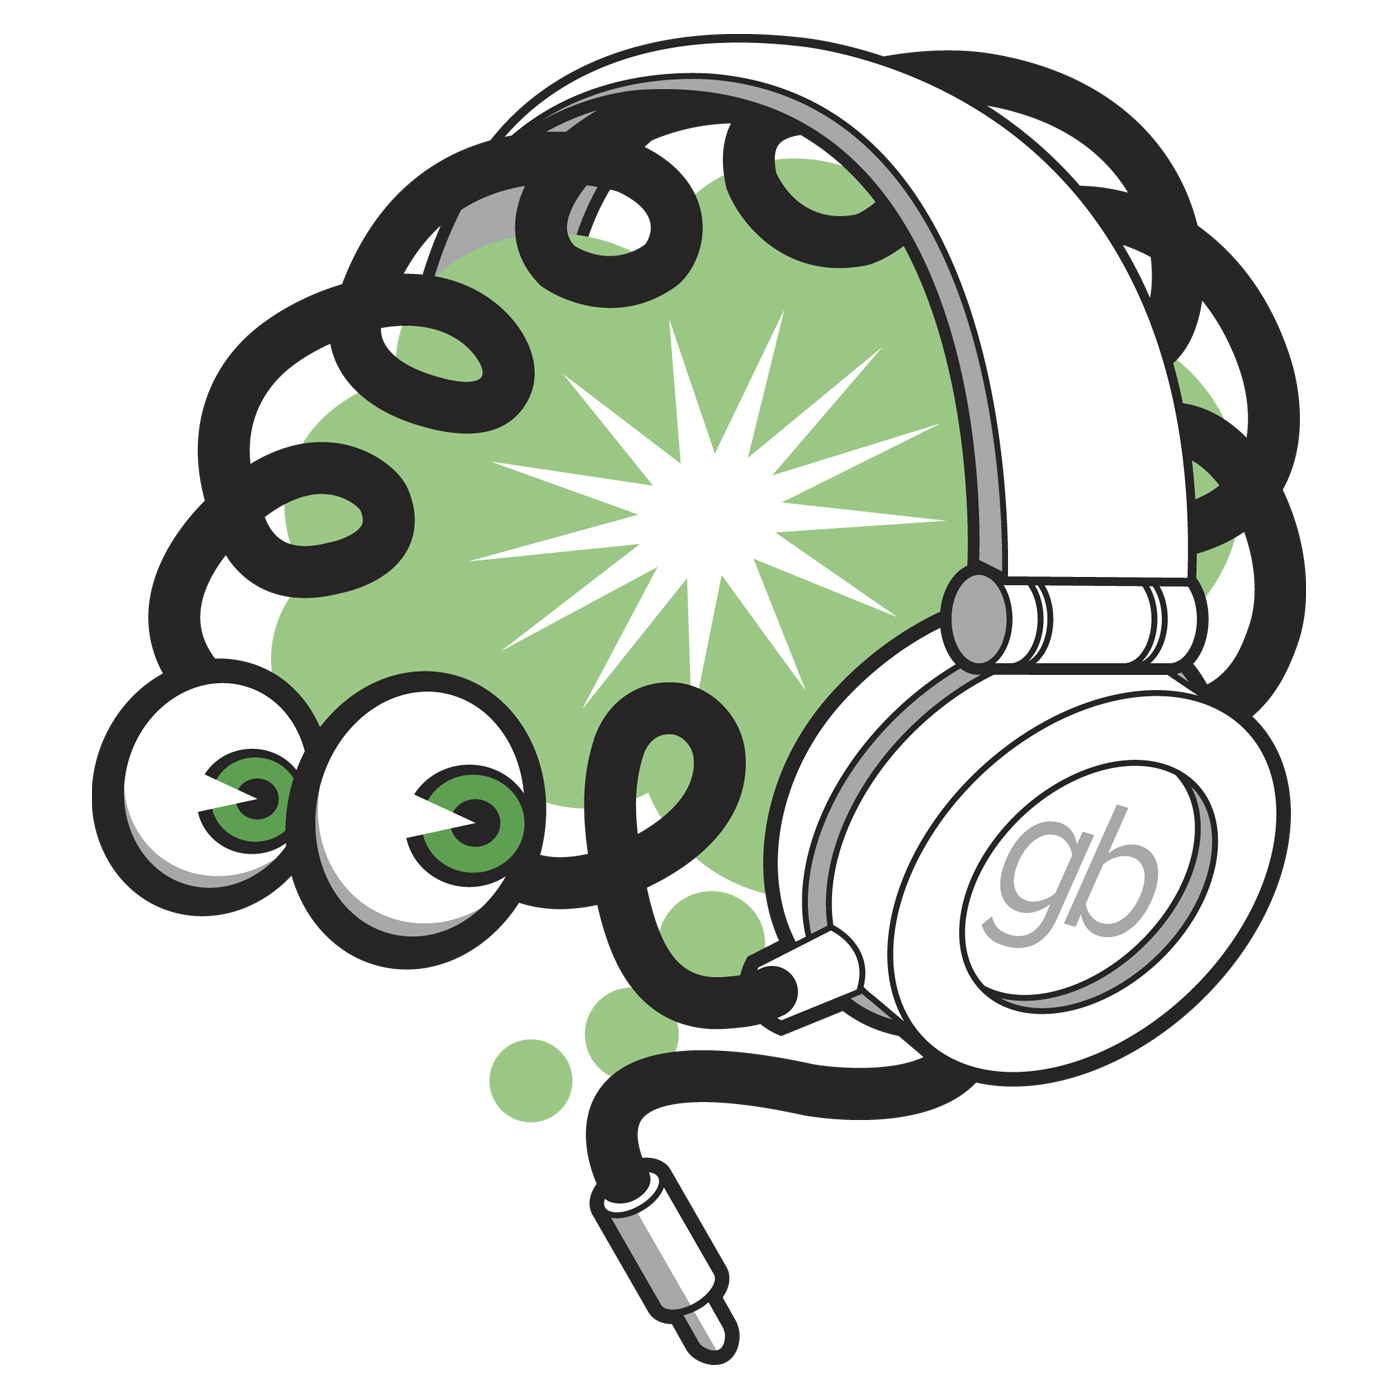 Brain waves clipart image freeuse download Brain Waves: The Green Brain Comics Podcast   Listen via Stitcher ... image freeuse download